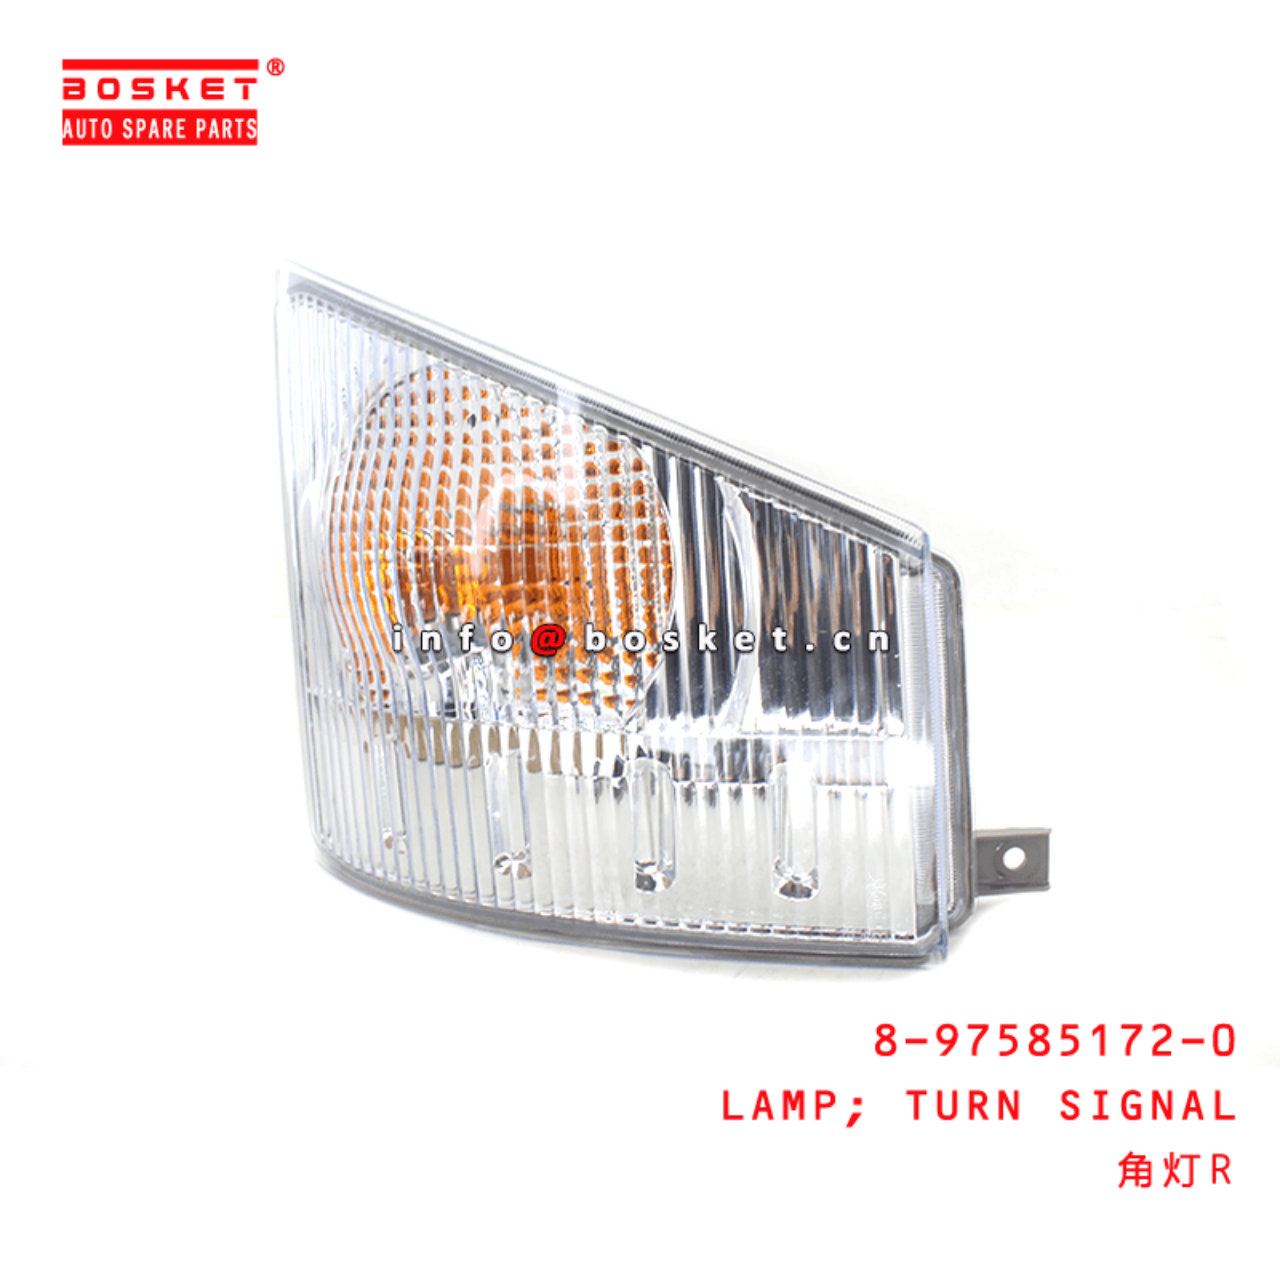 8-97585172-0 Turn Signal Lamp RH8975851720 Suitabl...